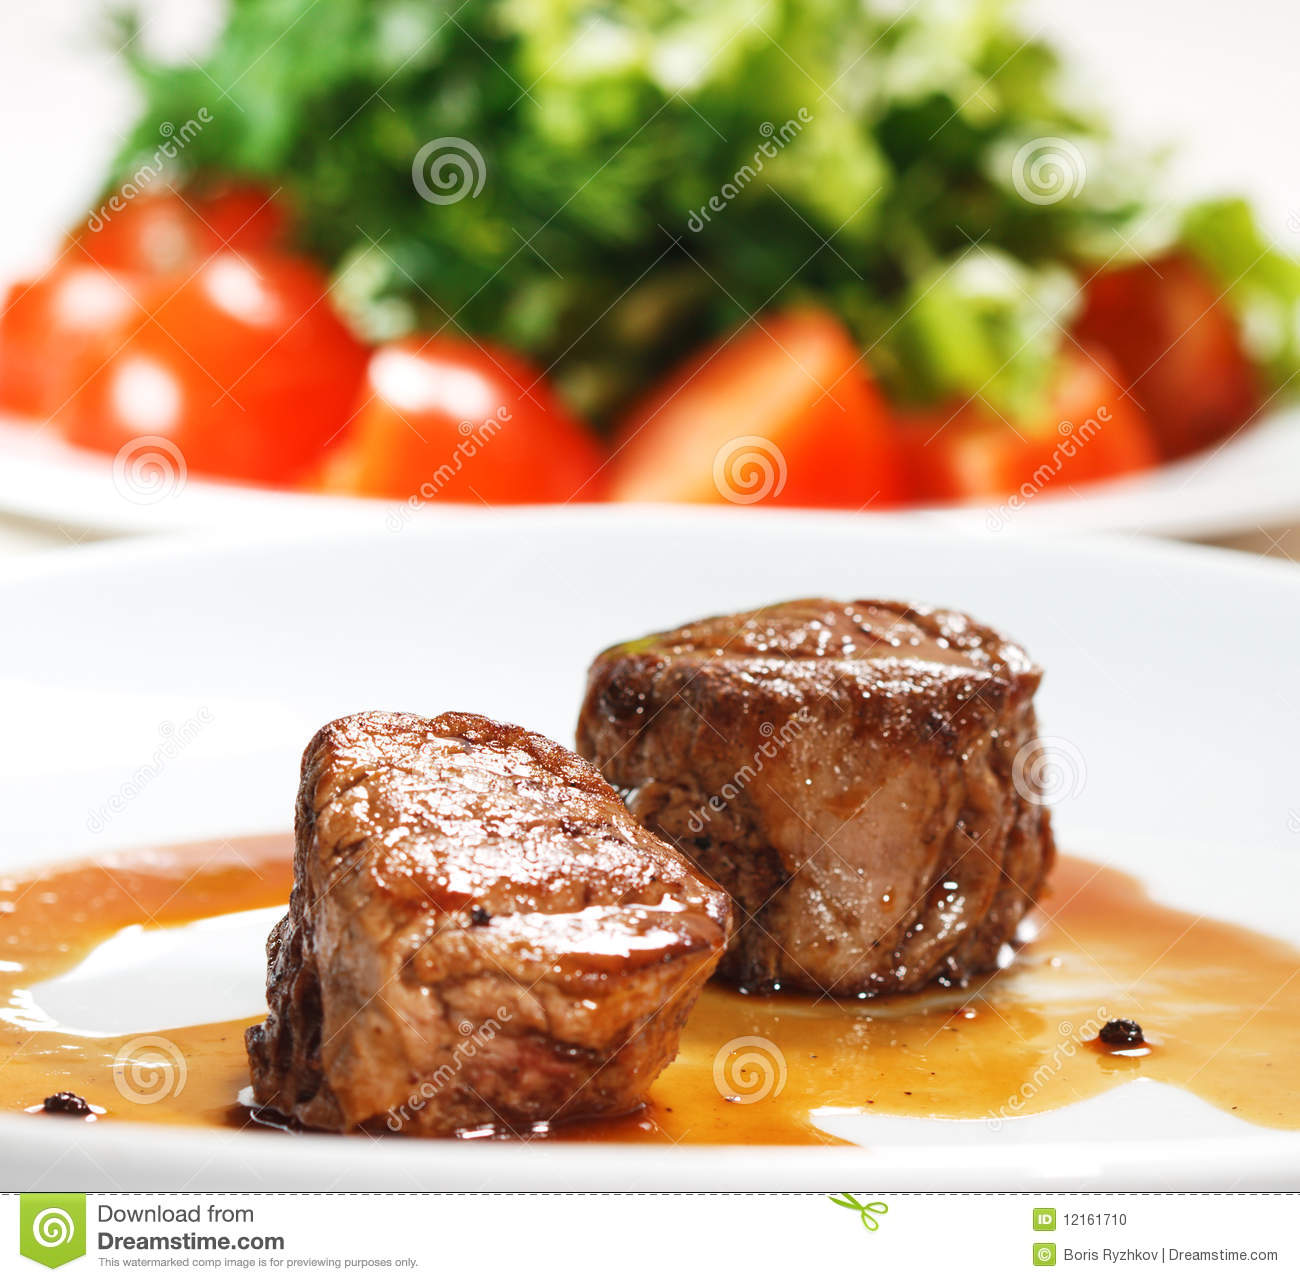 how to cook veal medallions